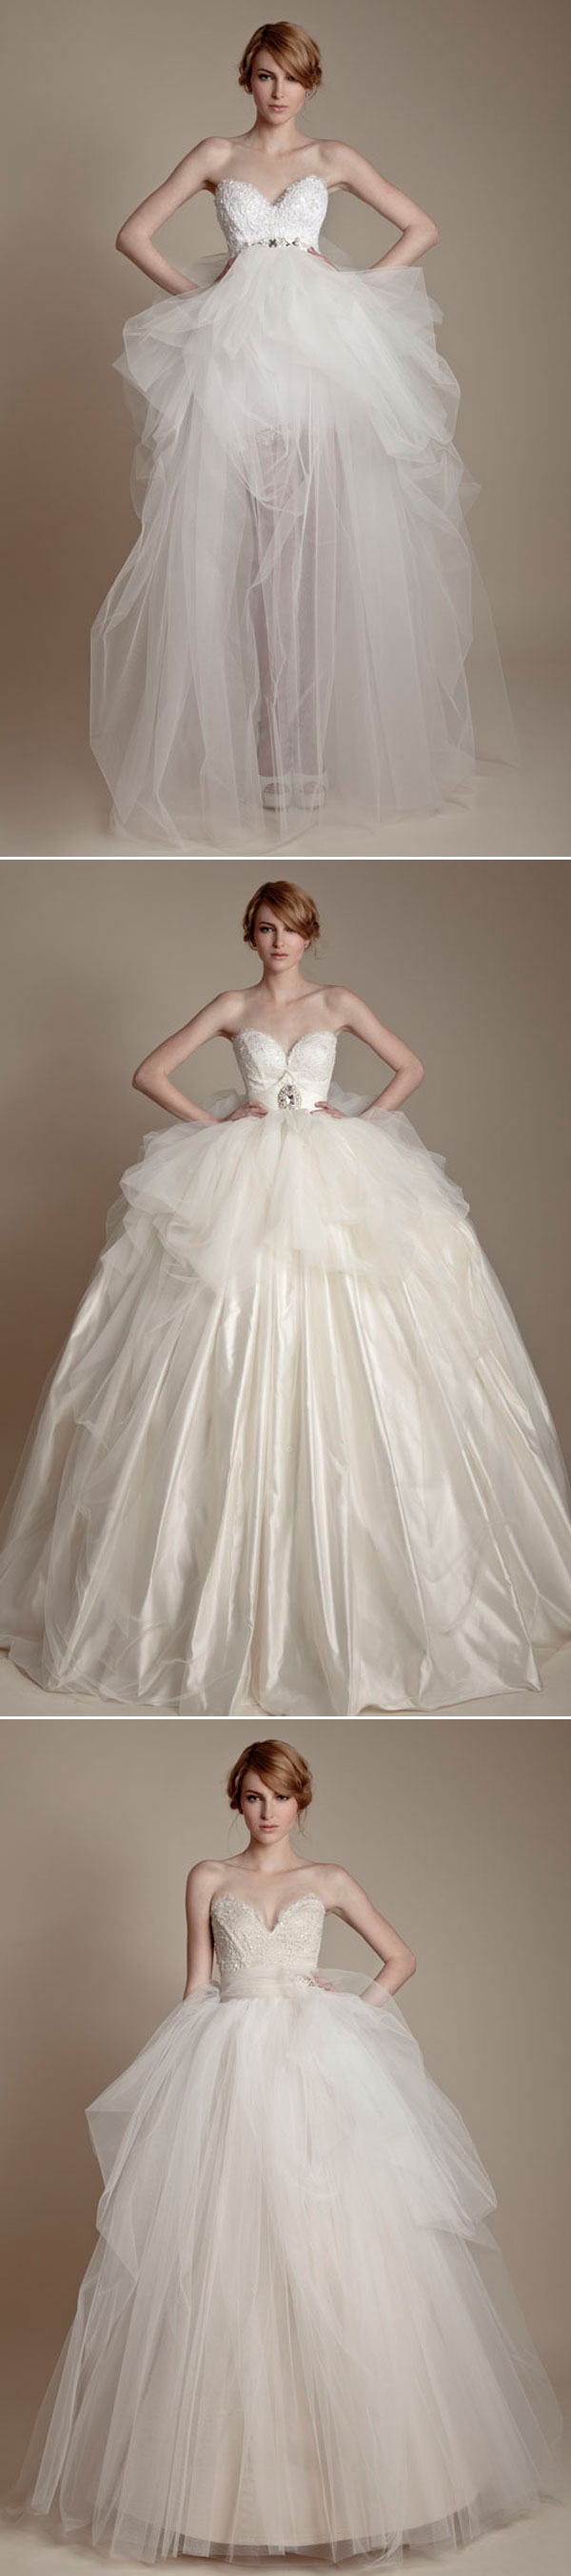 35 sweet baby doll inspired wedding dresses you 39 ll love for Baby doll style wedding dress